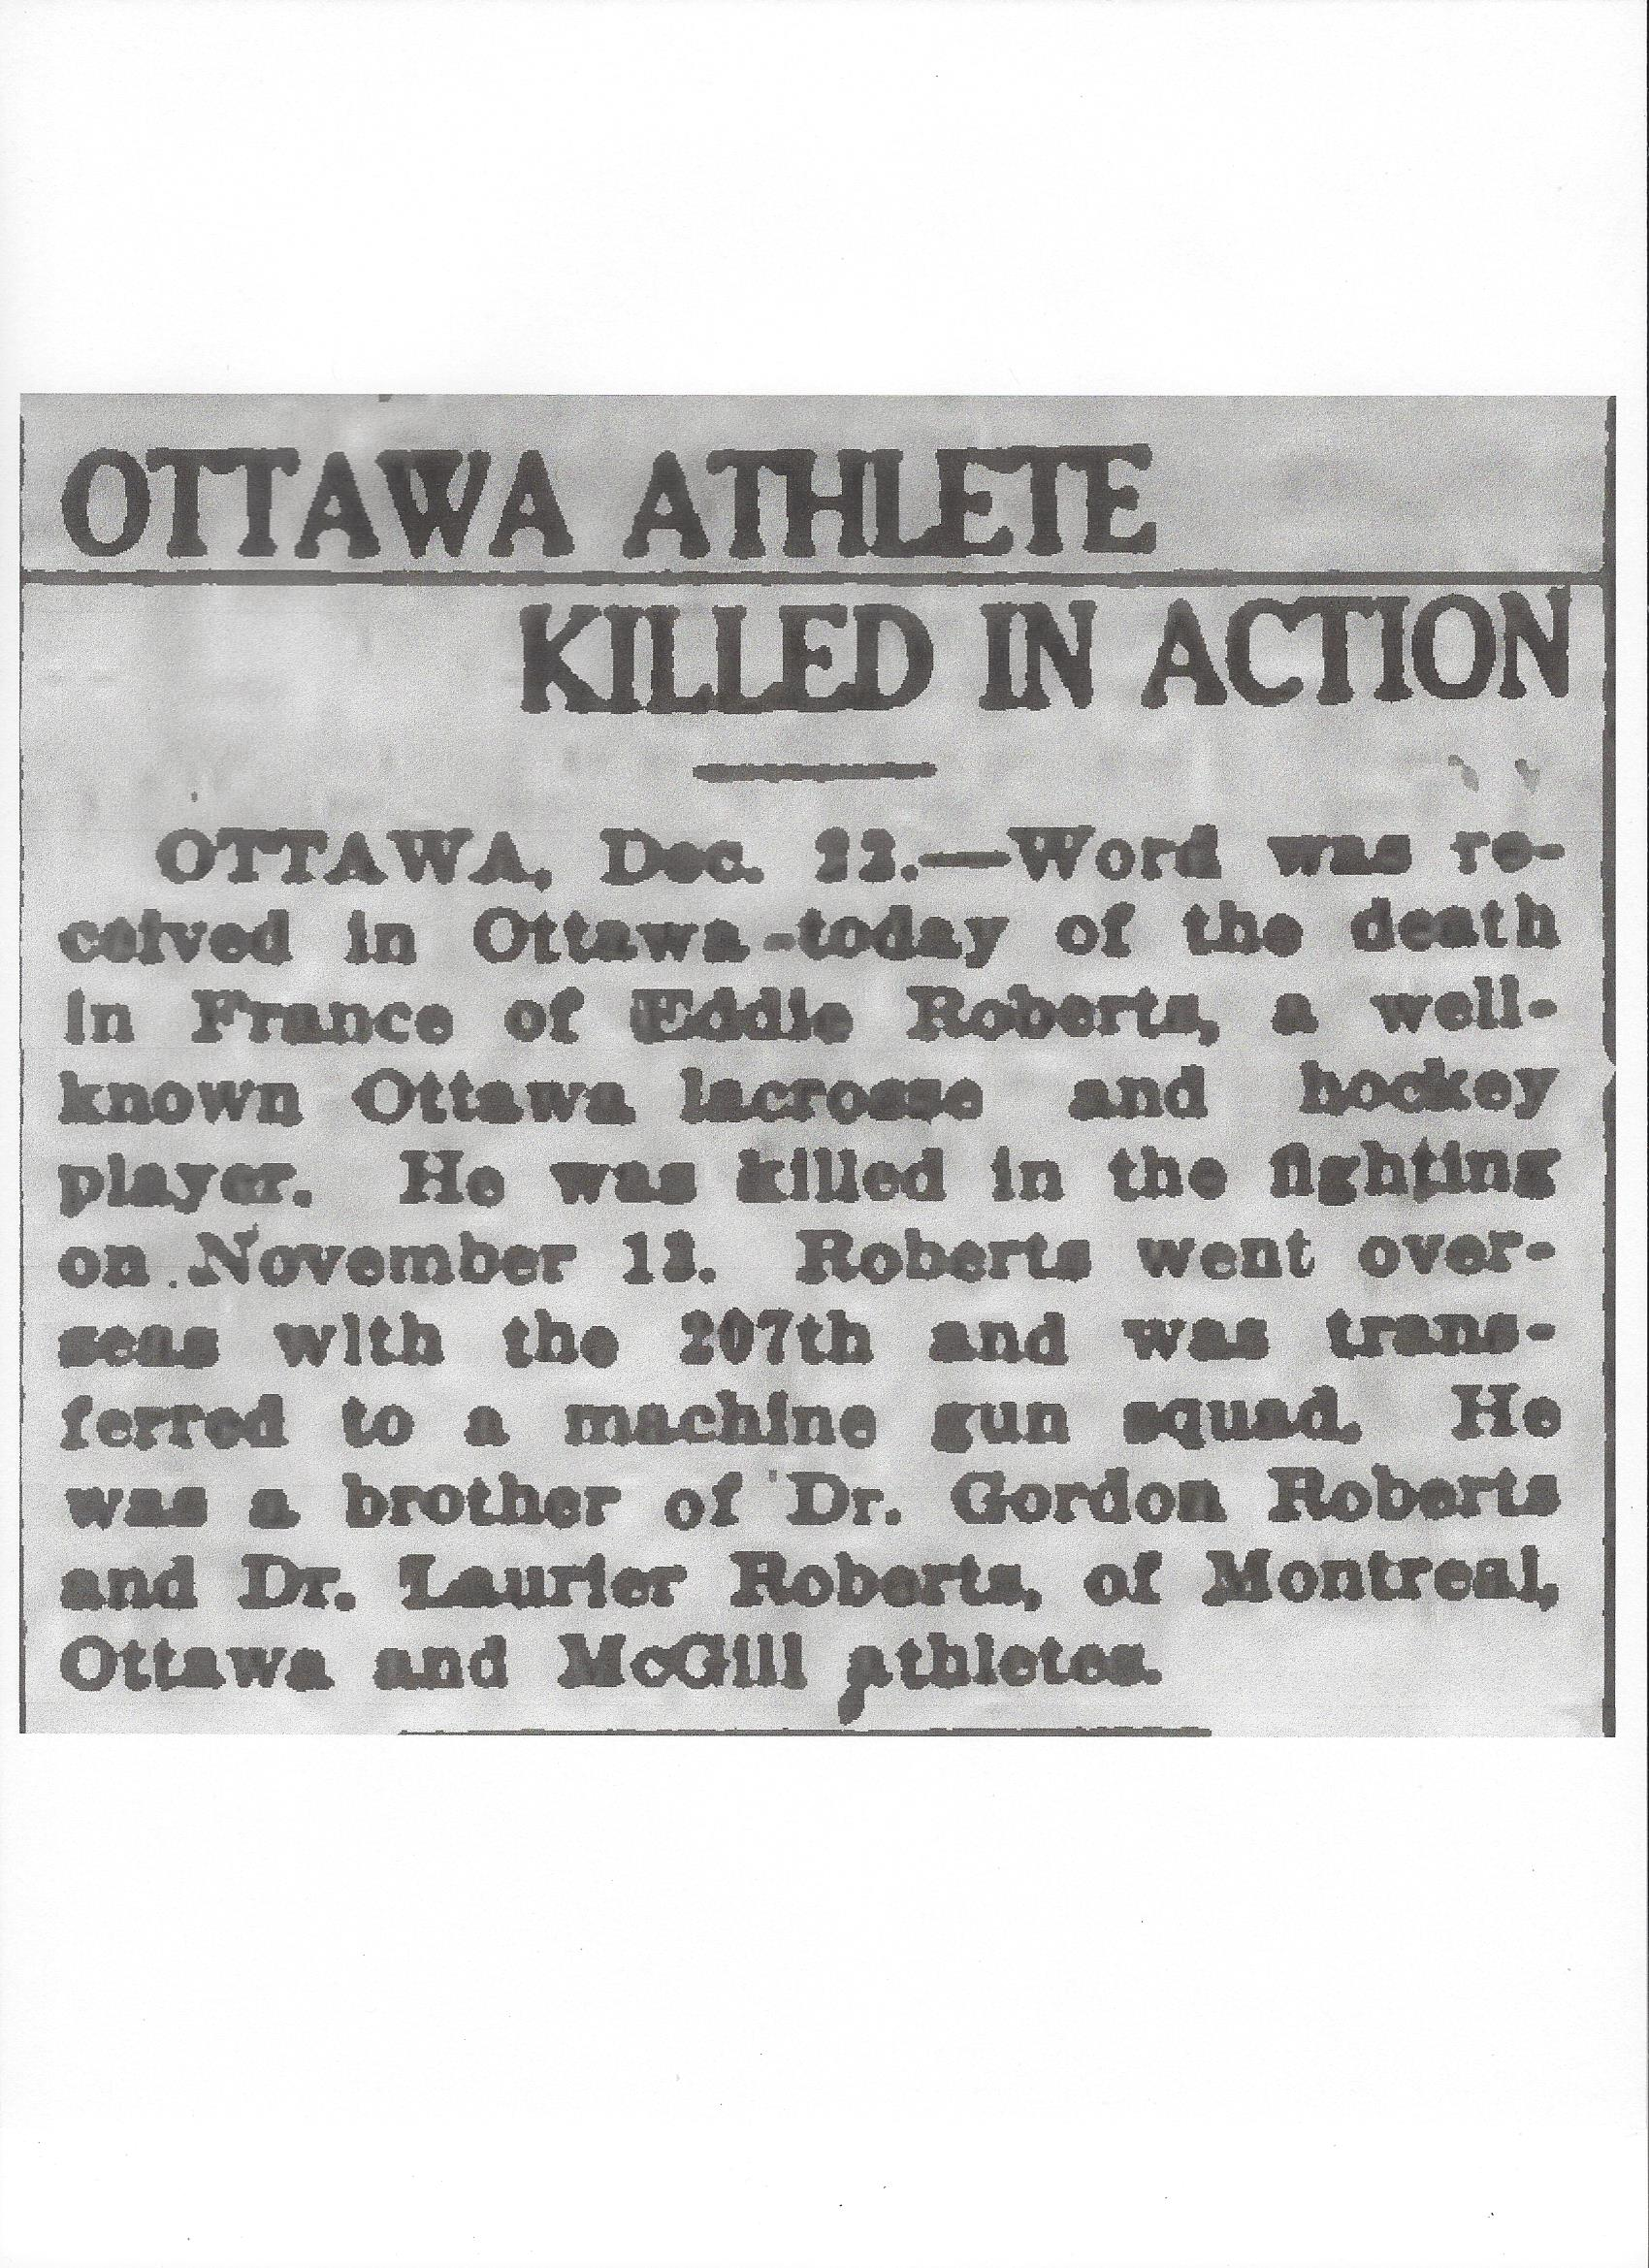 Newspaper Clipping– Newspaper clipping from the Daily Colonist of December 23, 1917. Image taken from web address of http://archive.org/stream/dailycolonist59by326uvic#page/n0/mode/1up